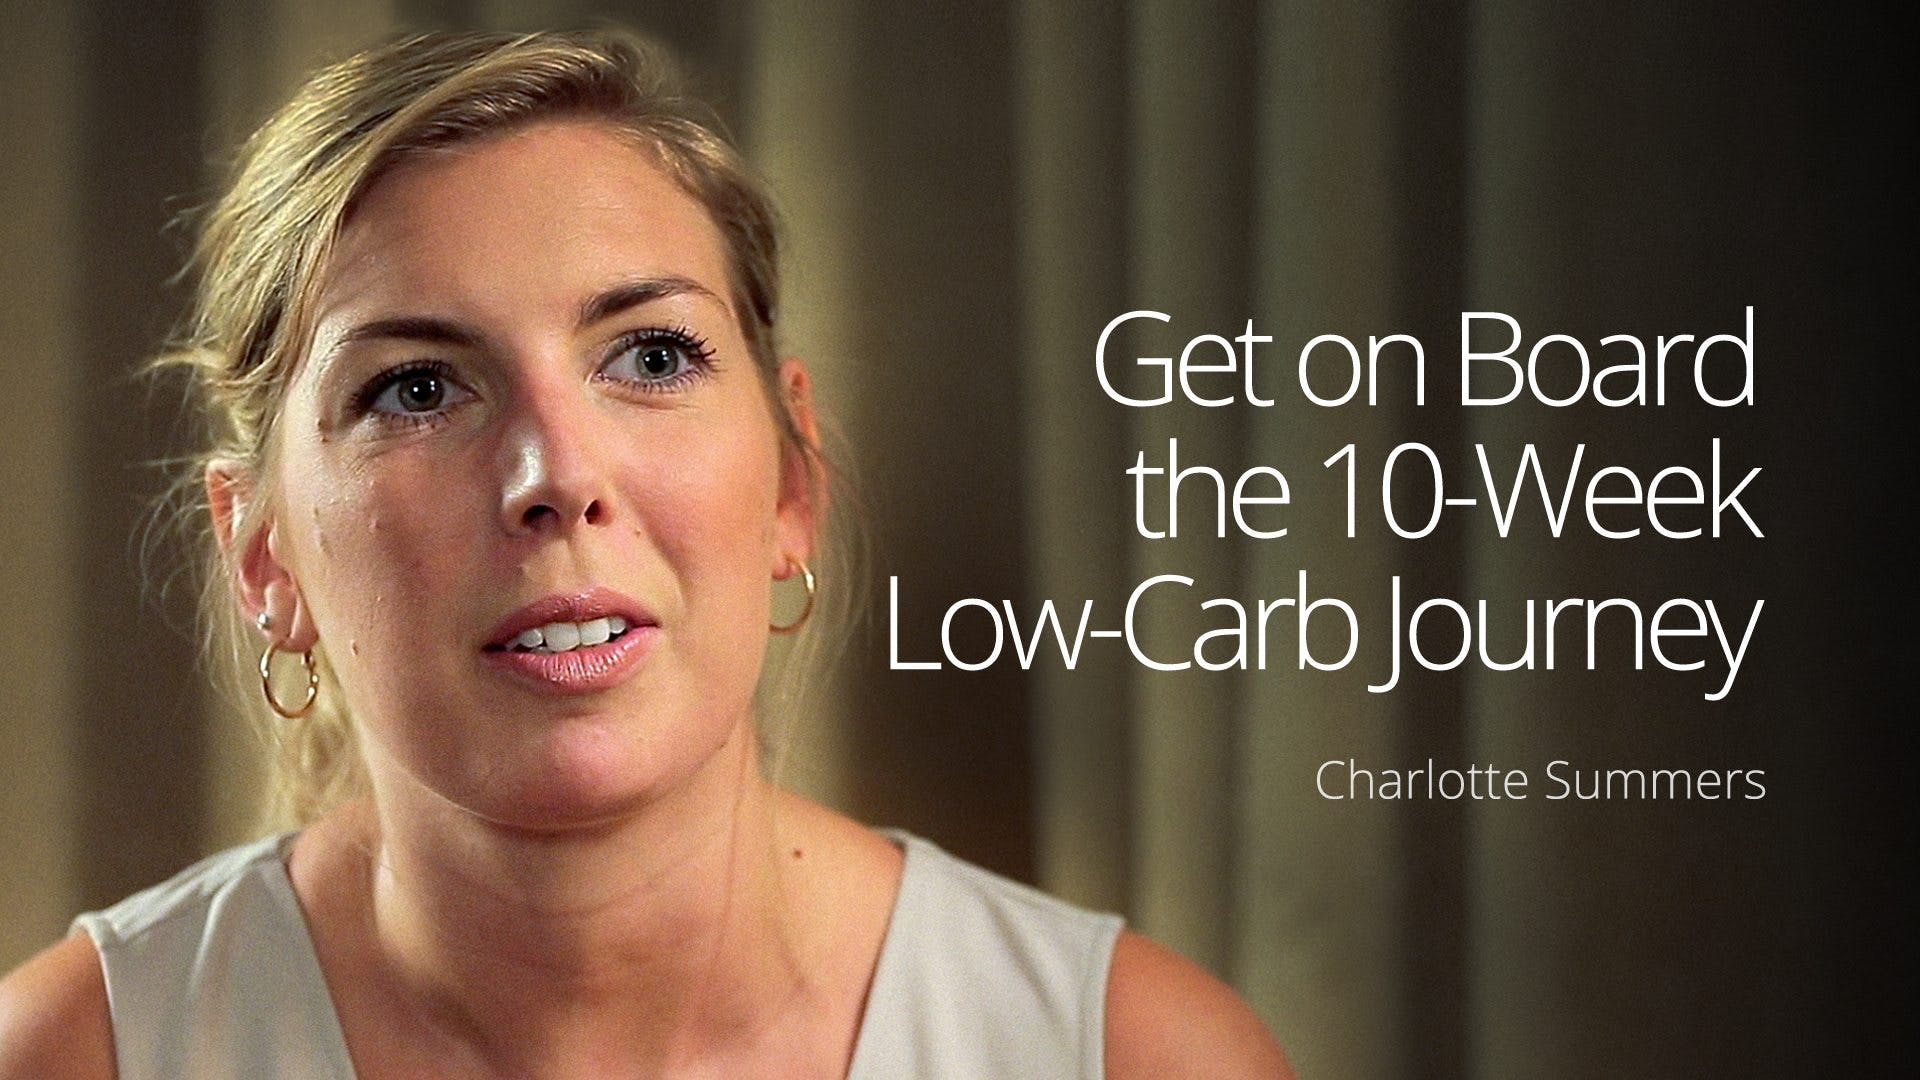 The 10-Week Low-Carb Journey